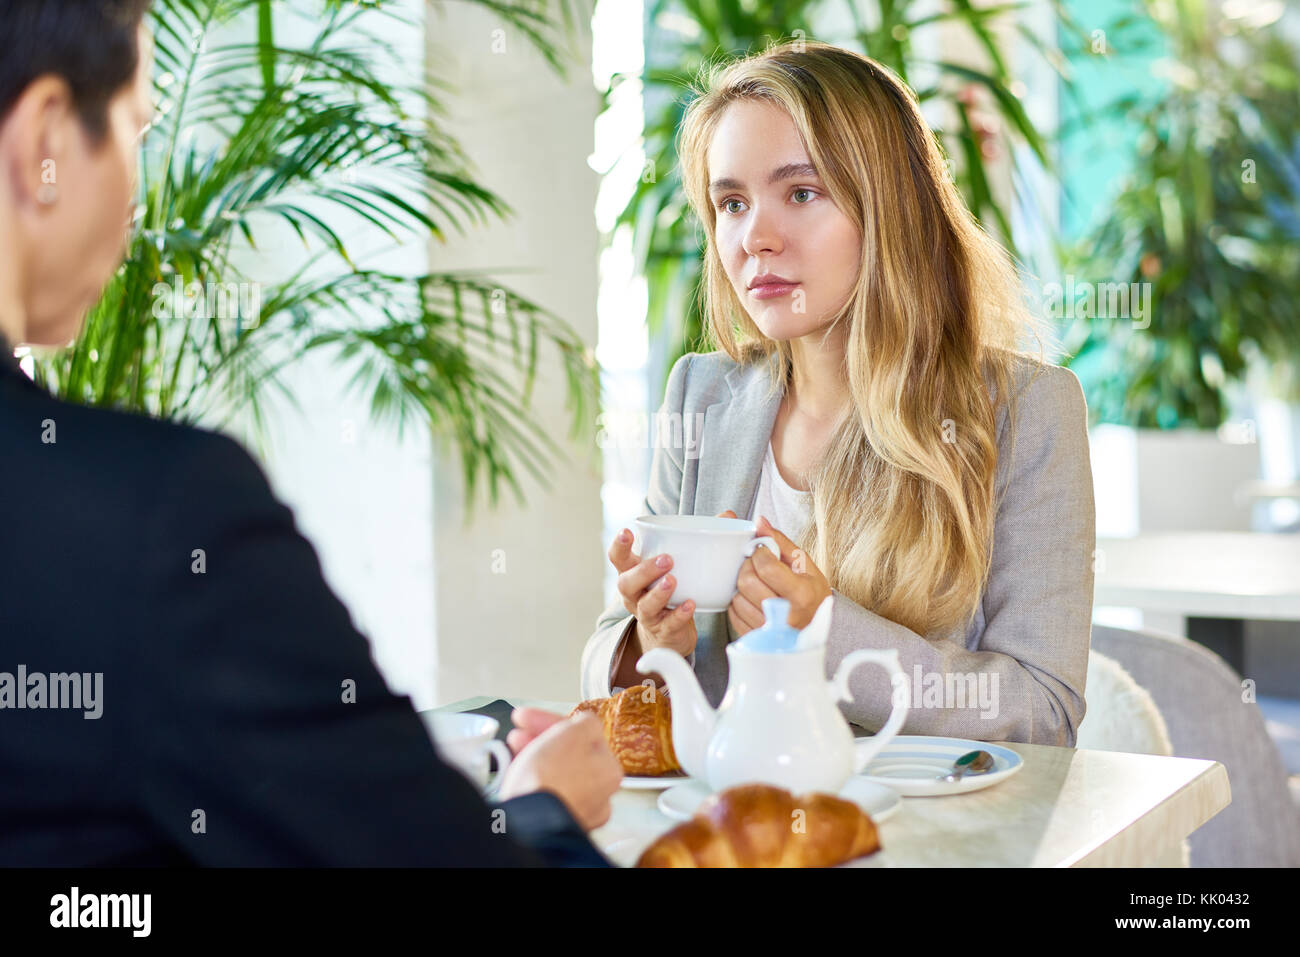 Portrait of modern young woman drinking coffee at cafe table listening to someone sitting across from her during - Stock Image